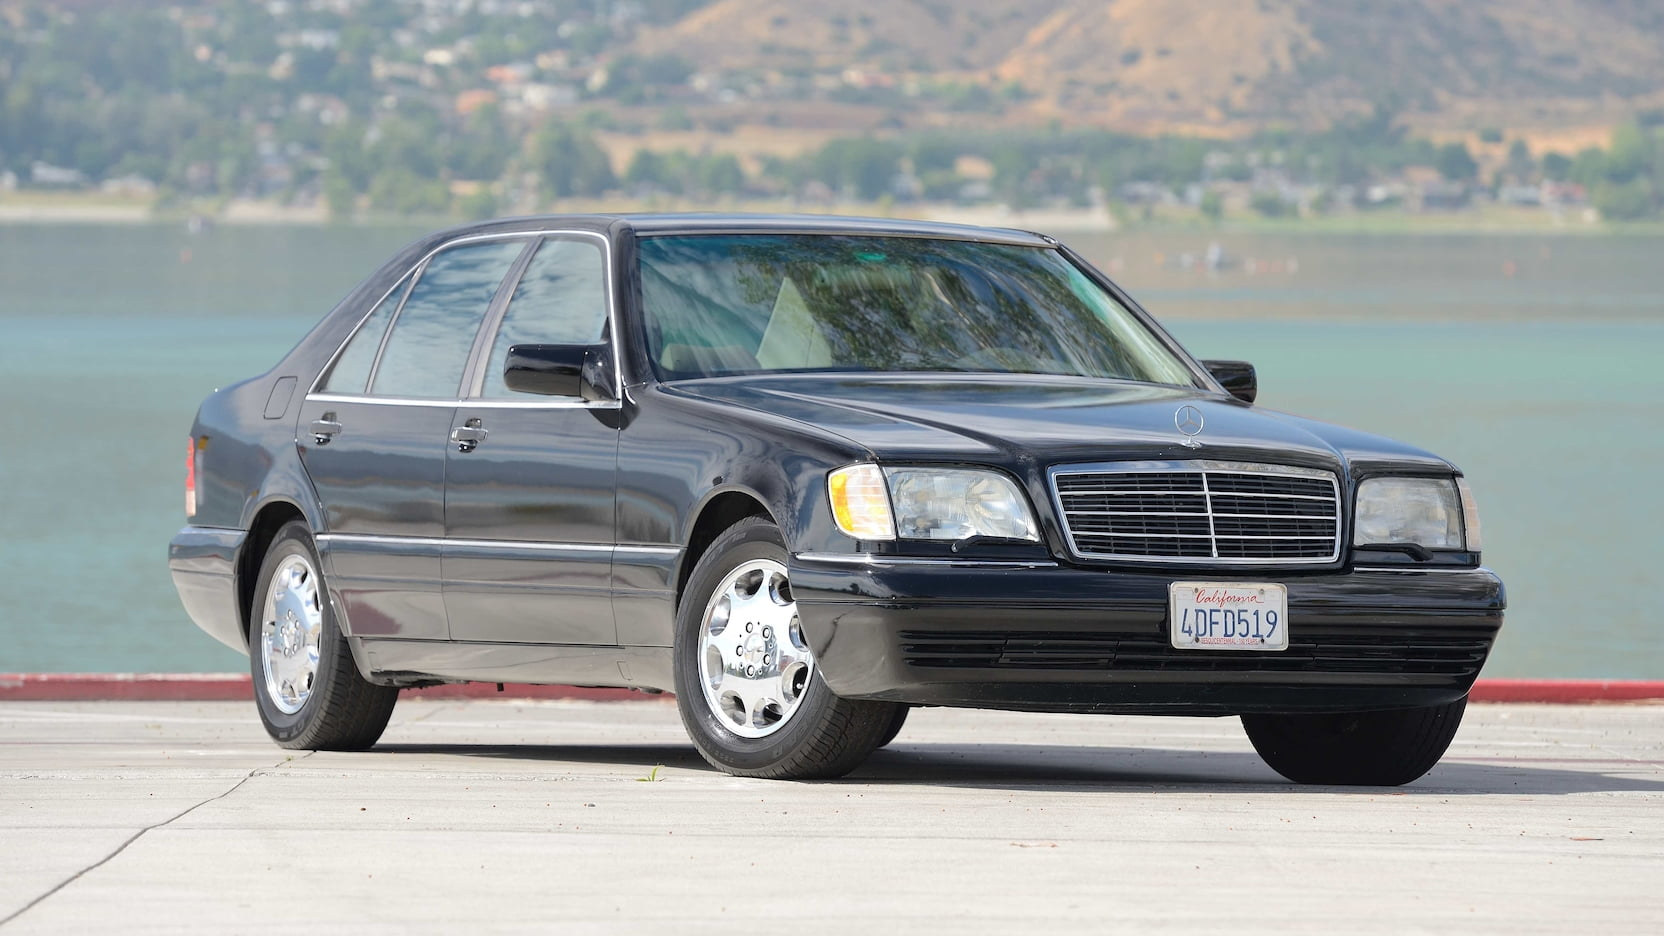 1995 Mercedes-Benz S Class W123456789 chassis code